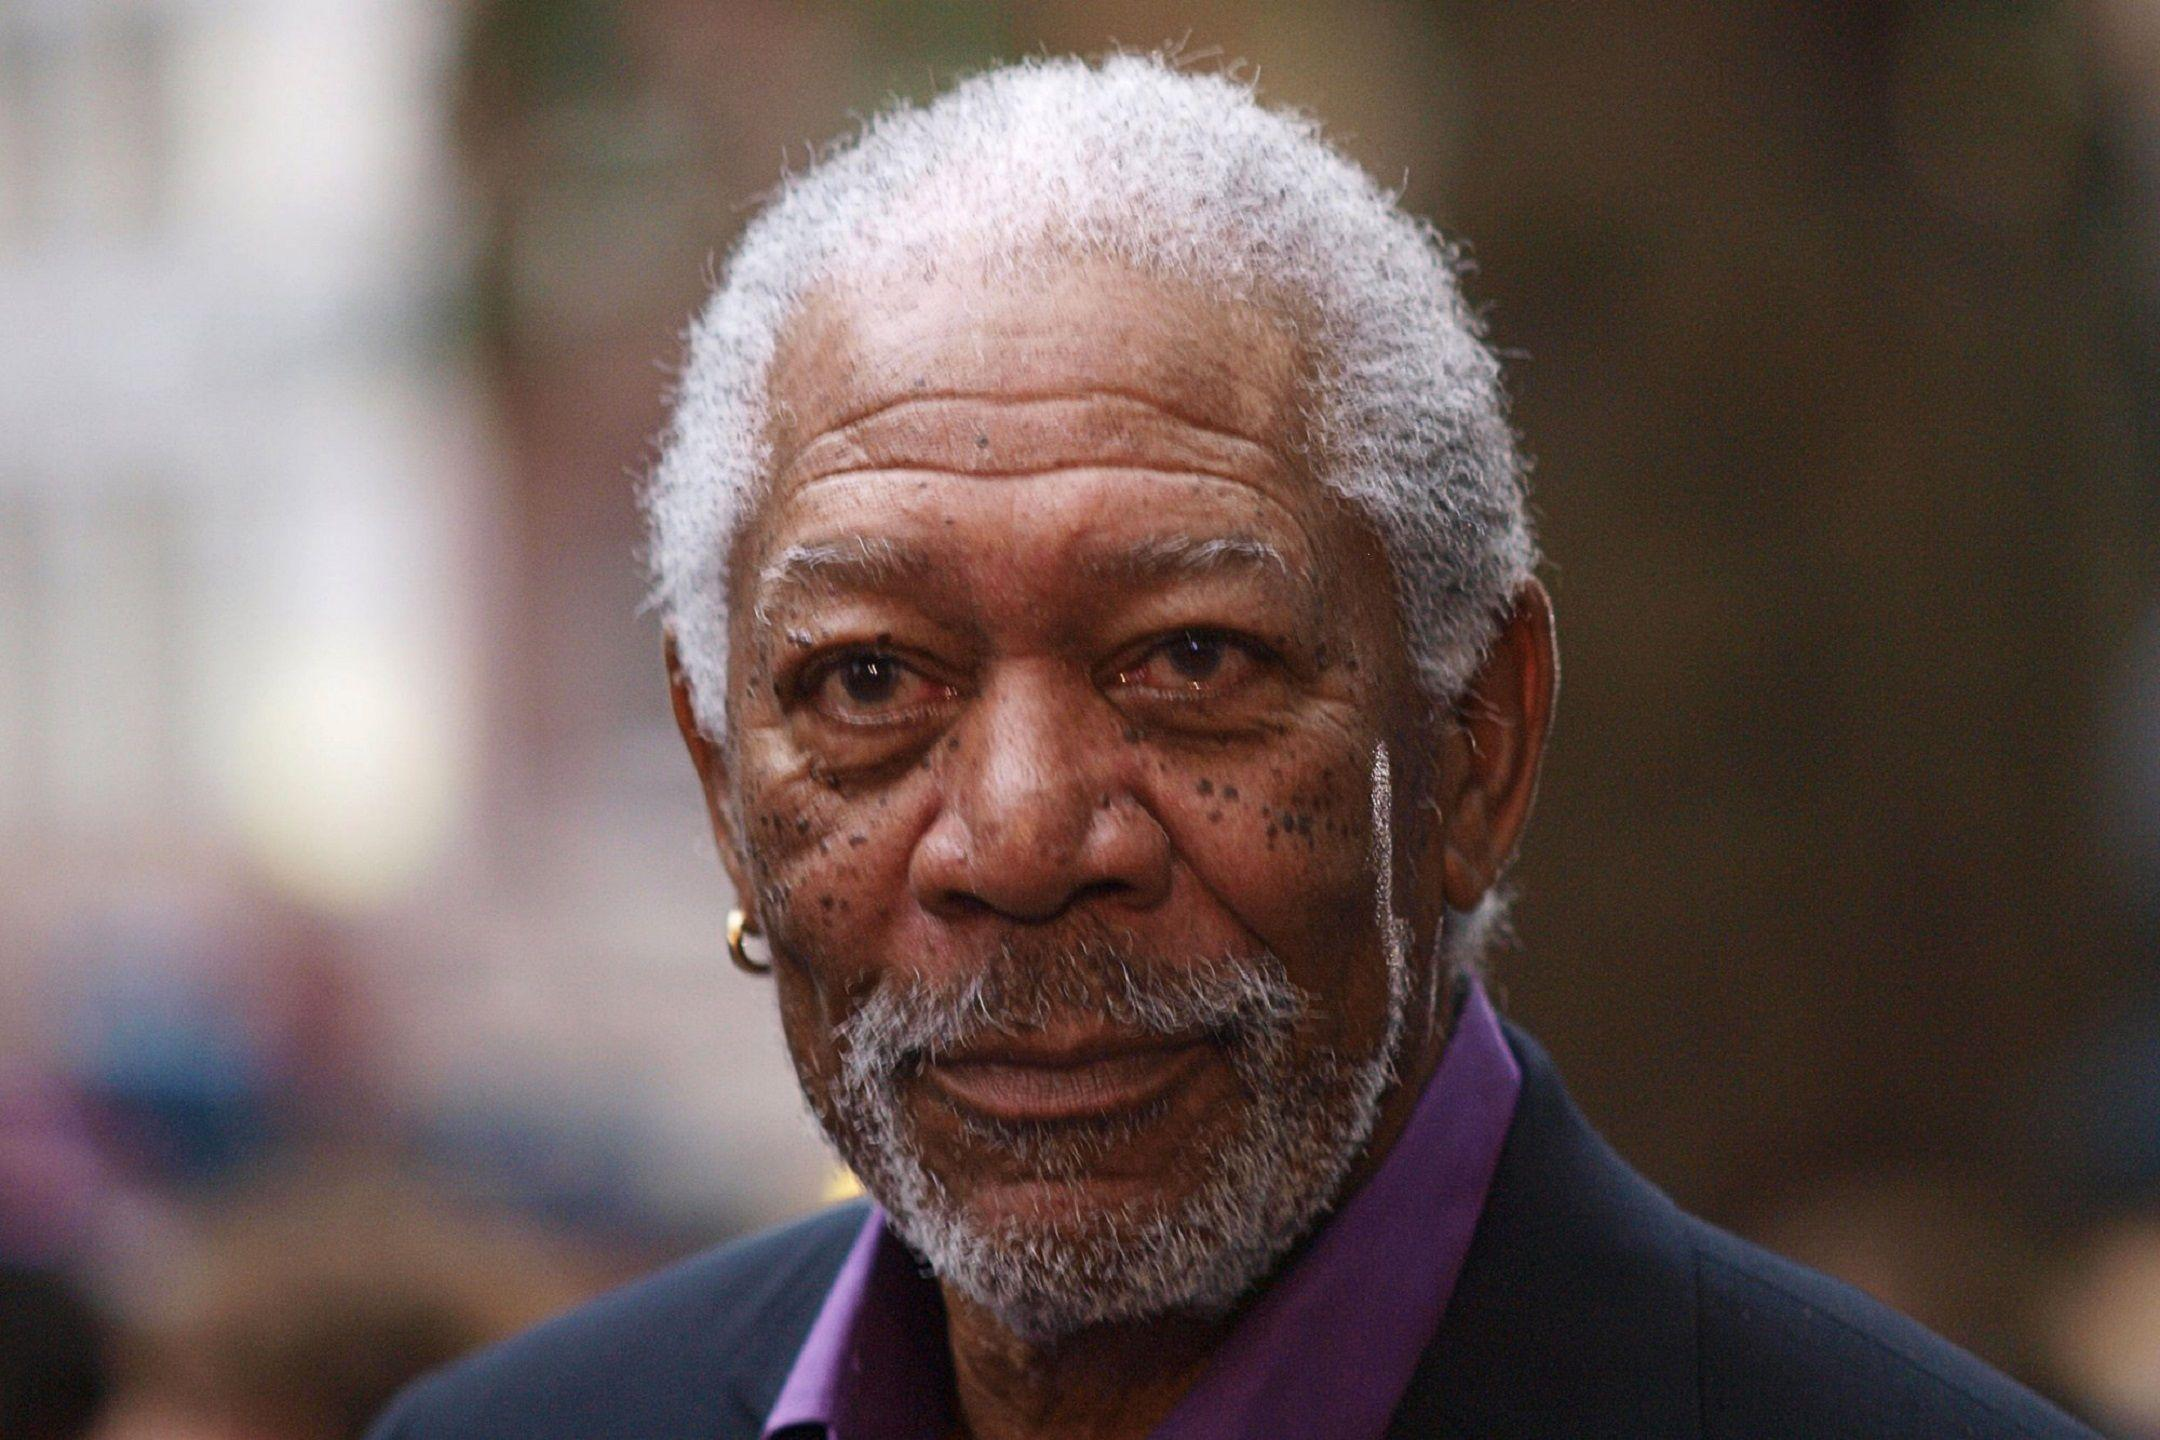 Morgan Freeman Wallpapers Images Photos Pictures Backgrounds